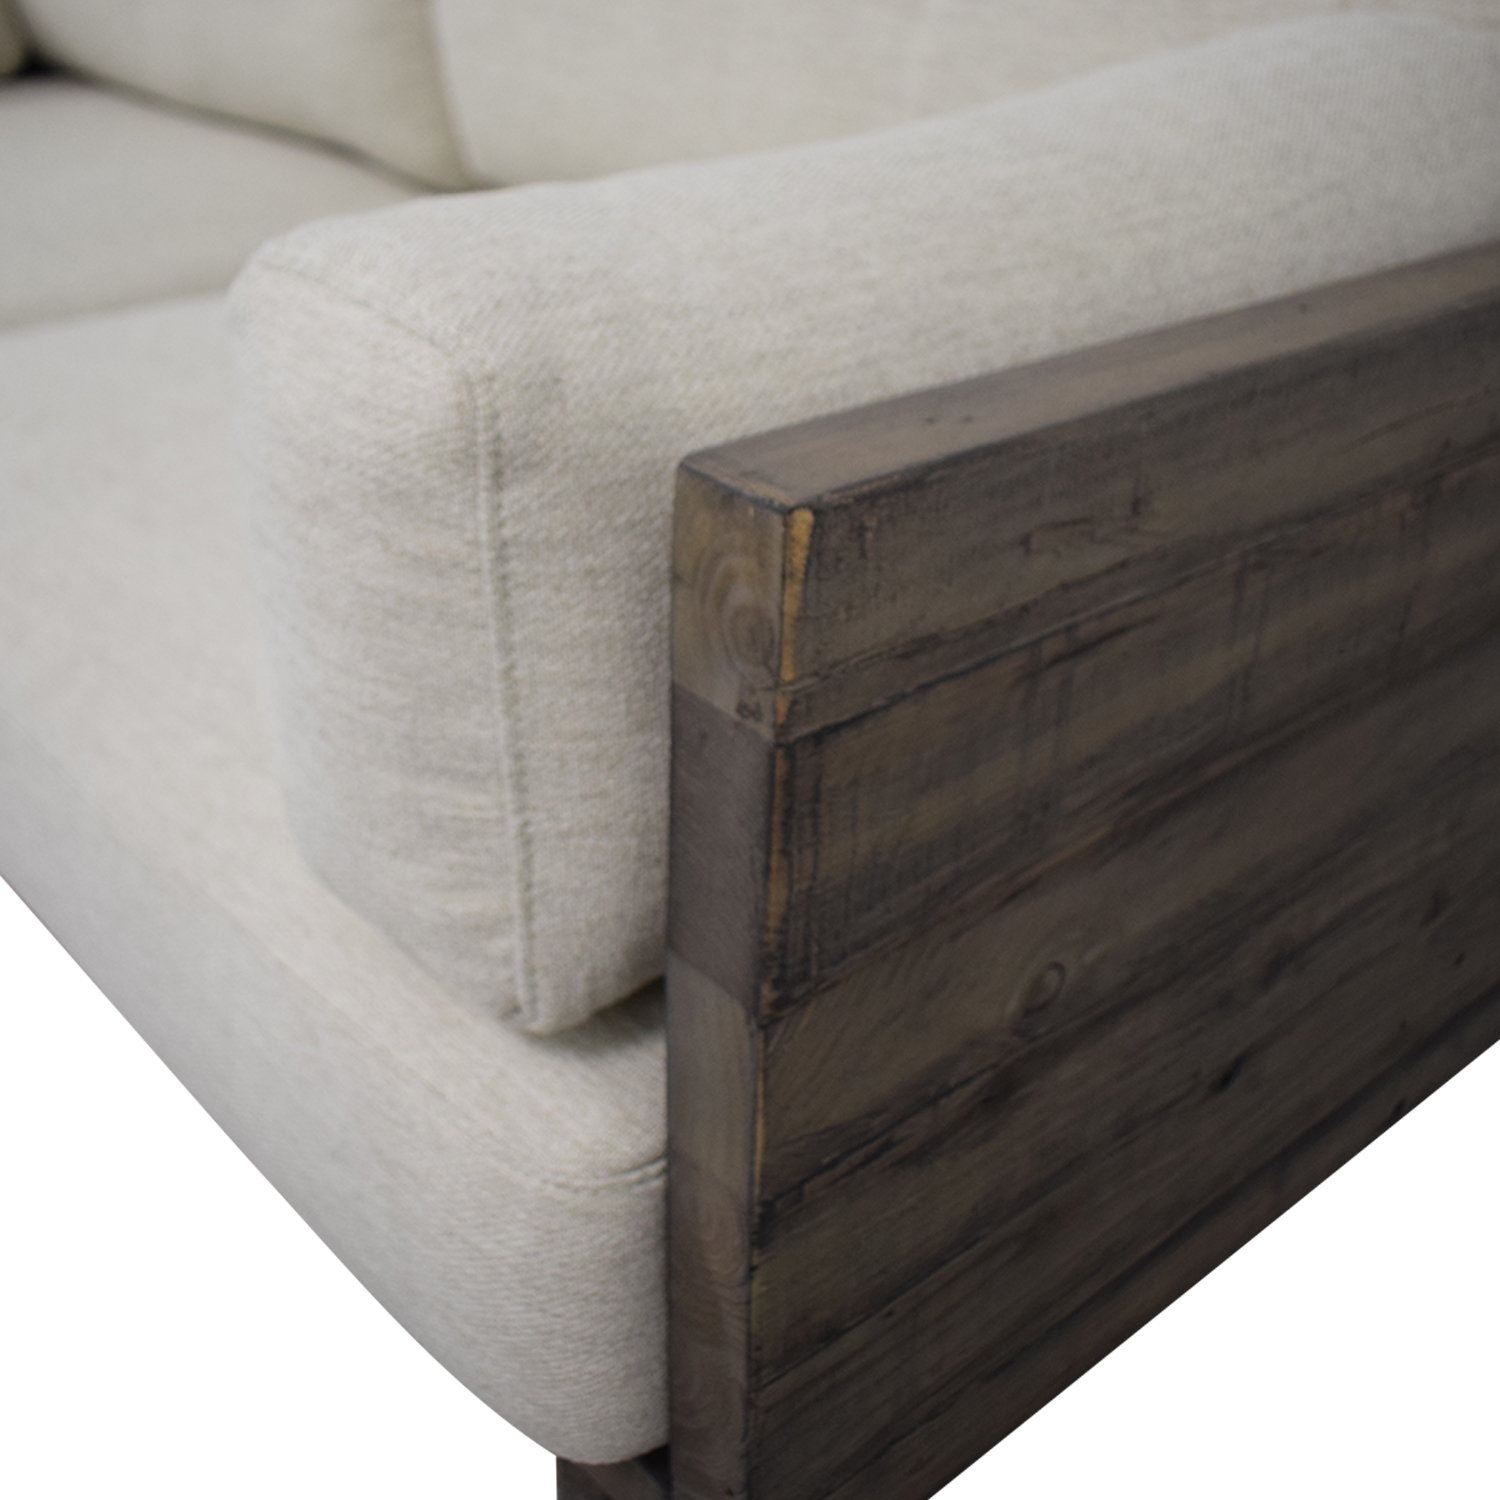 West Elm West Elm Emmerson Reclaimed Wood Sofa second hand